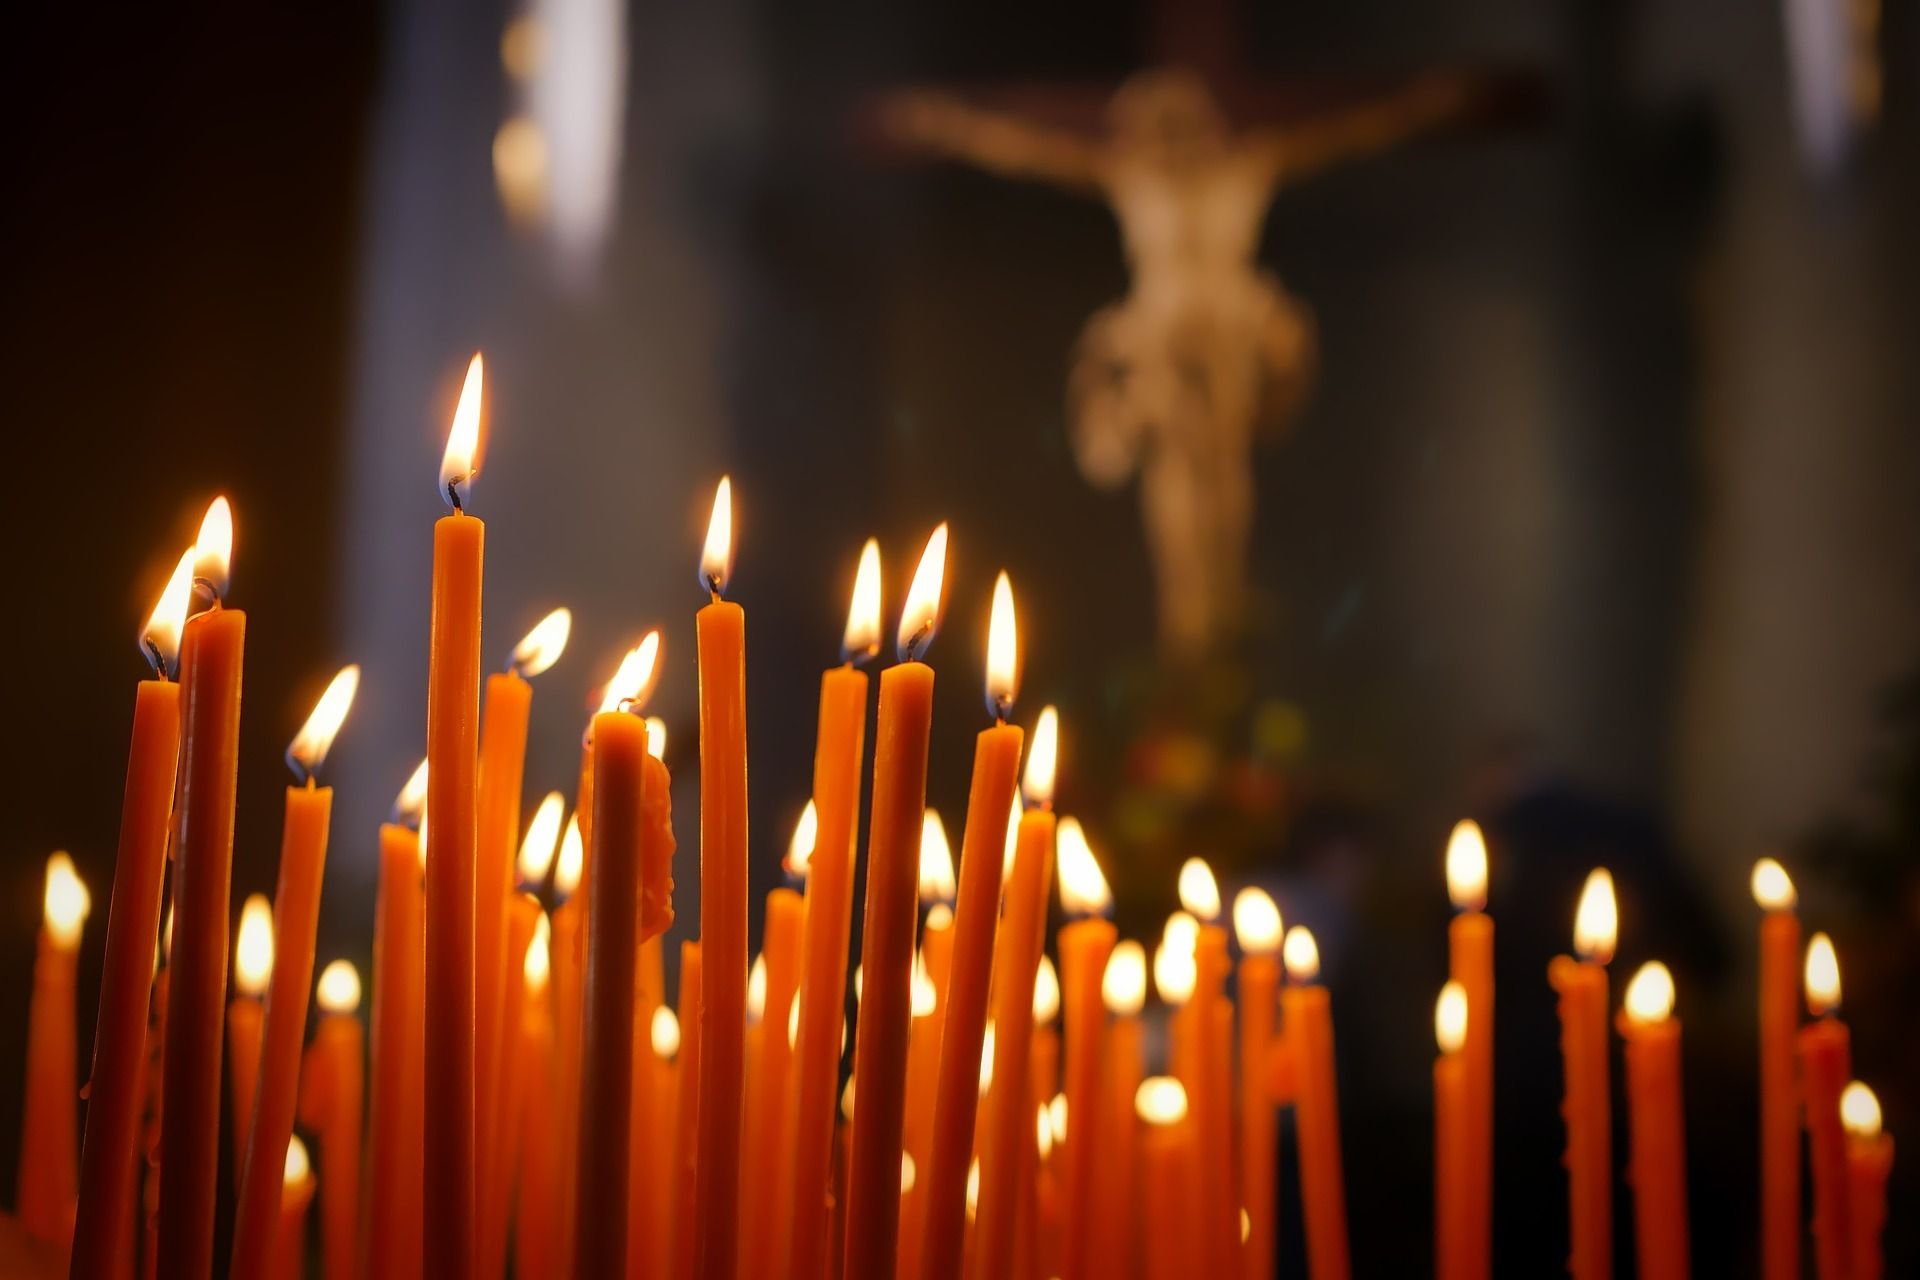 https://www.cccathedral.org/assets/images/uploads/candles-2903063_1920.jpg